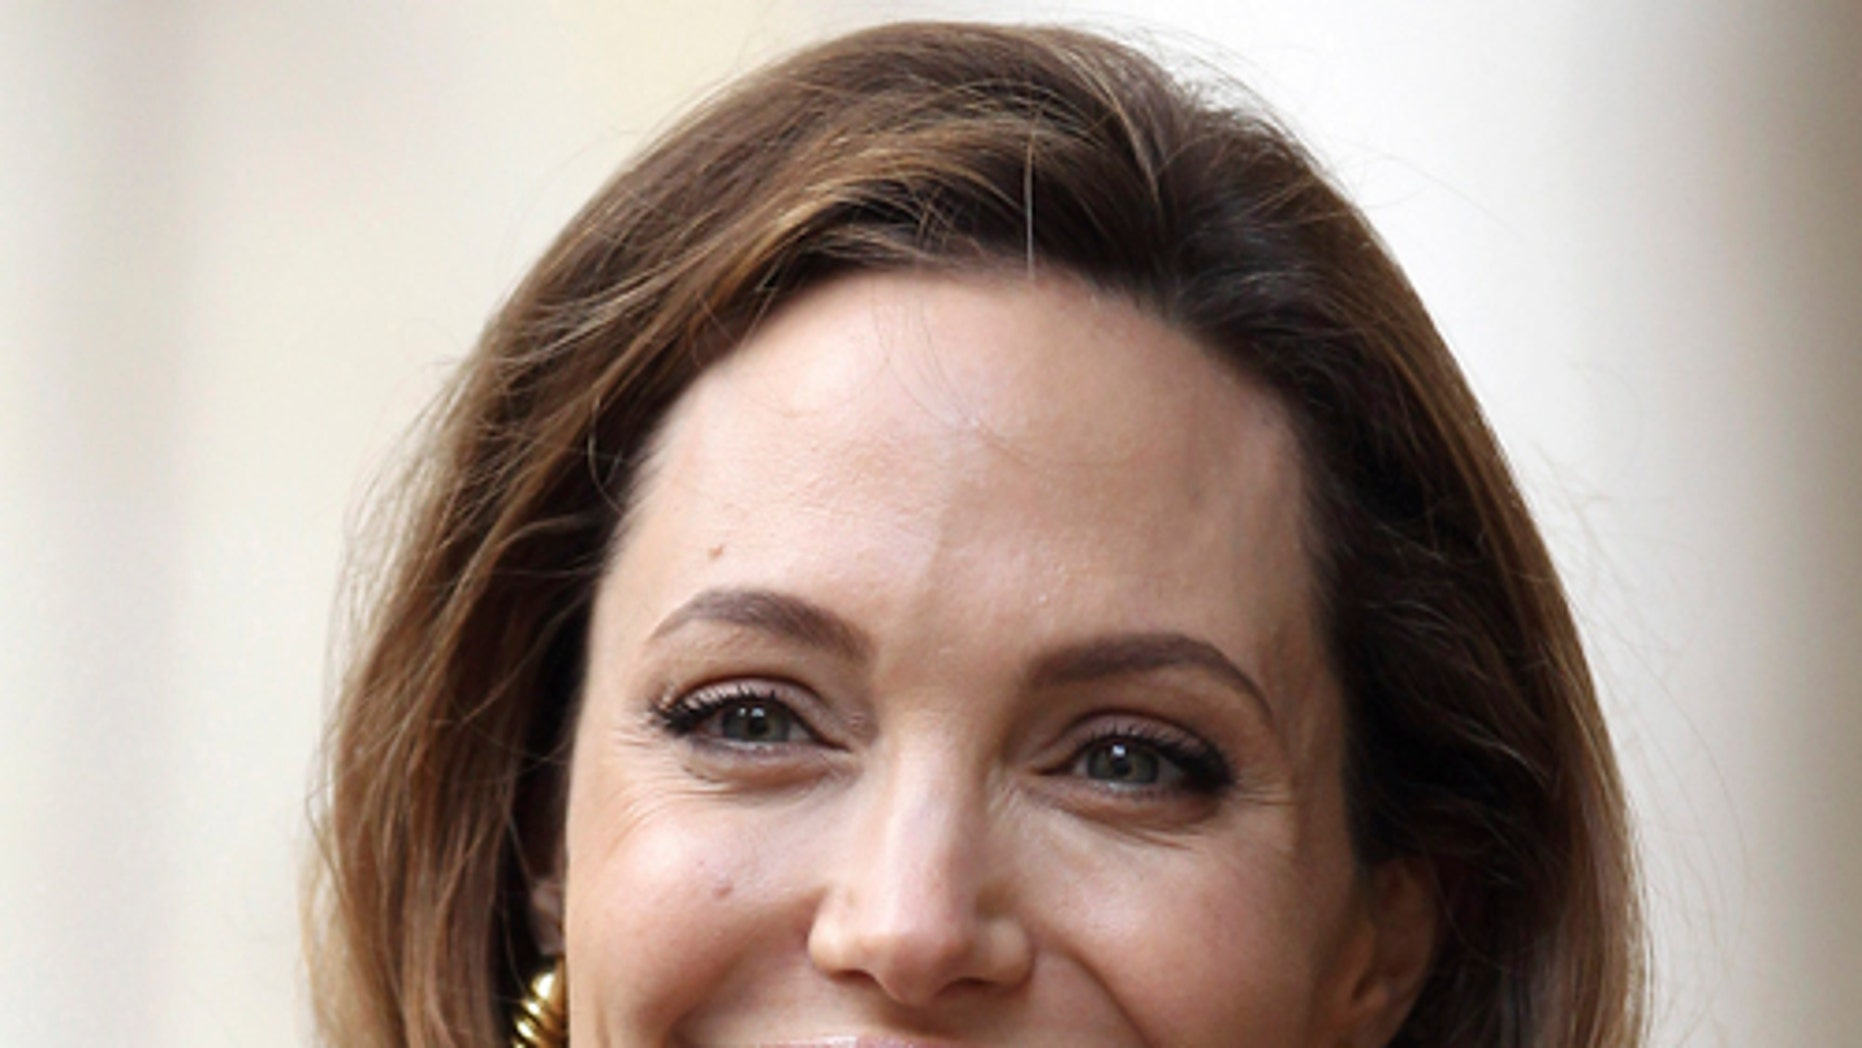 May 29, 2012: Angelina Jolie arrives to Britain's Foreign Secretary William Hague ahead of a screening of her new film 'In the Land of Blood and Honey' at the Foreign Commonwealth Office in central London.